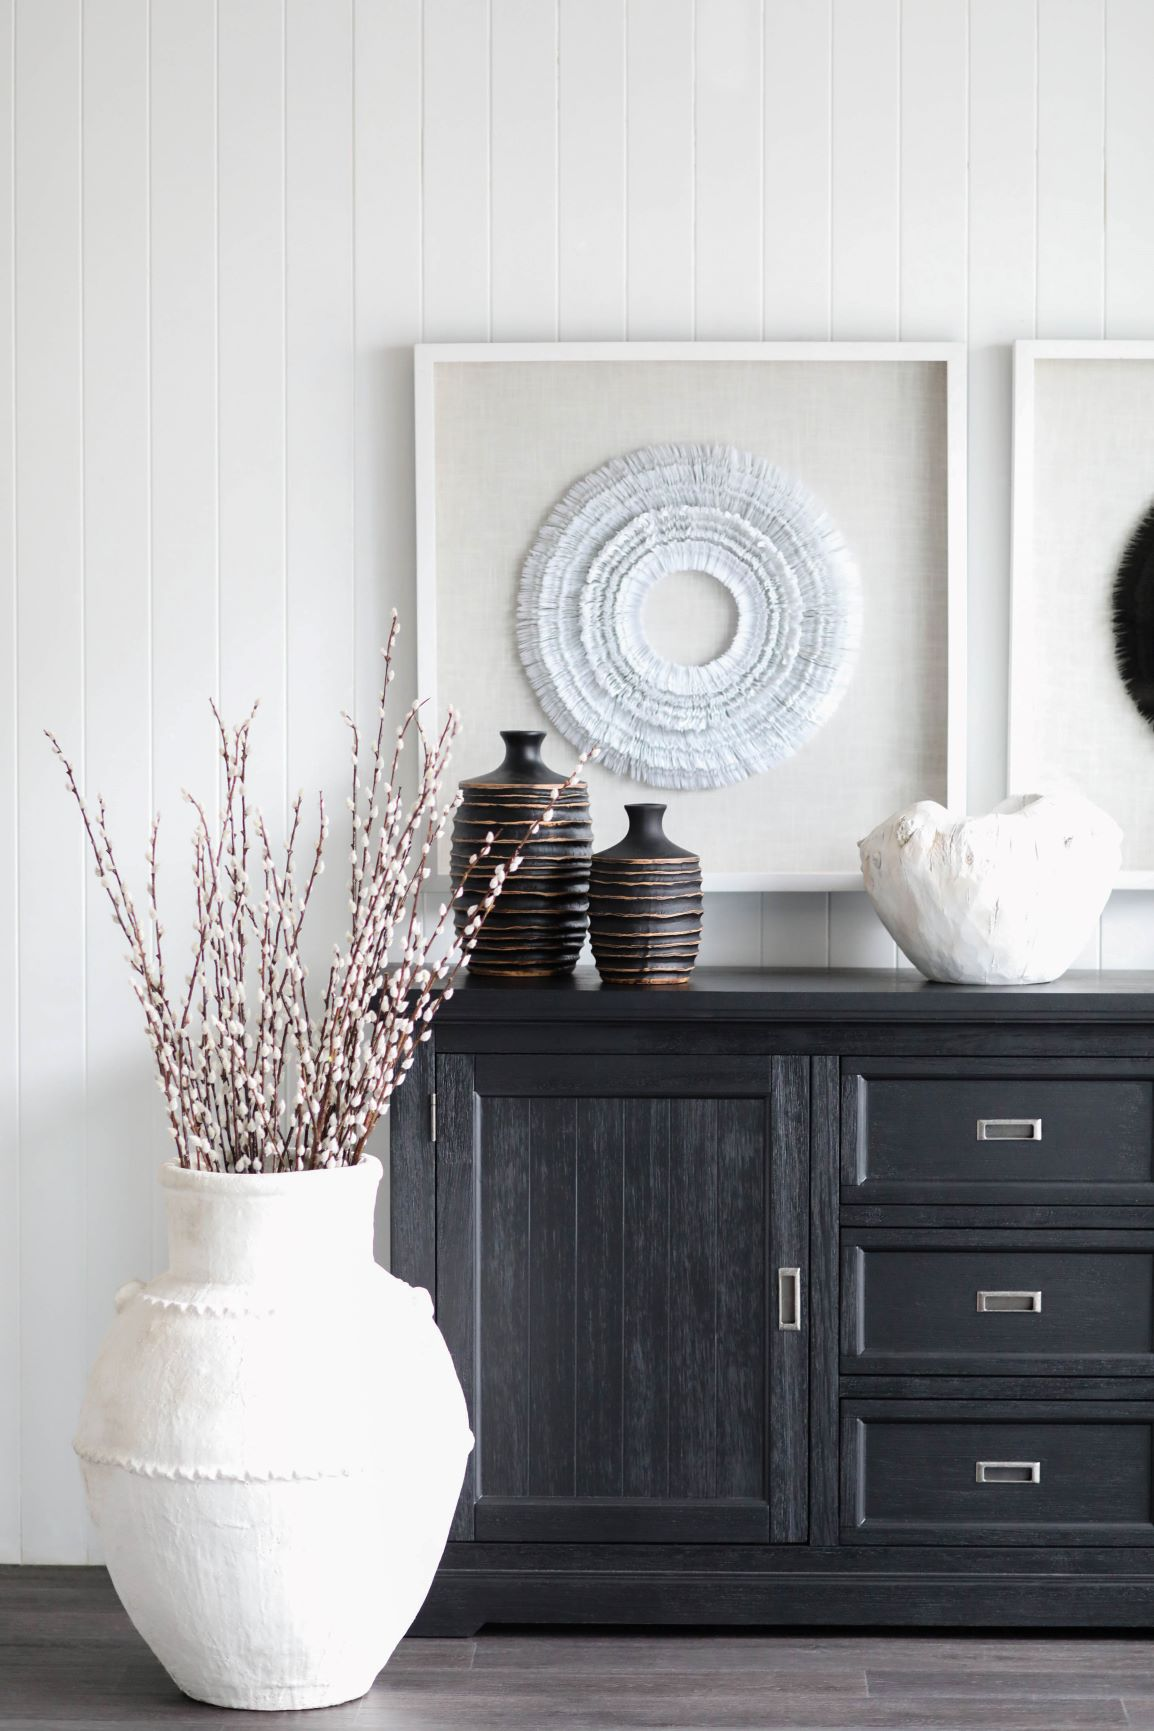 Monochromatic colour schemes - Black and white